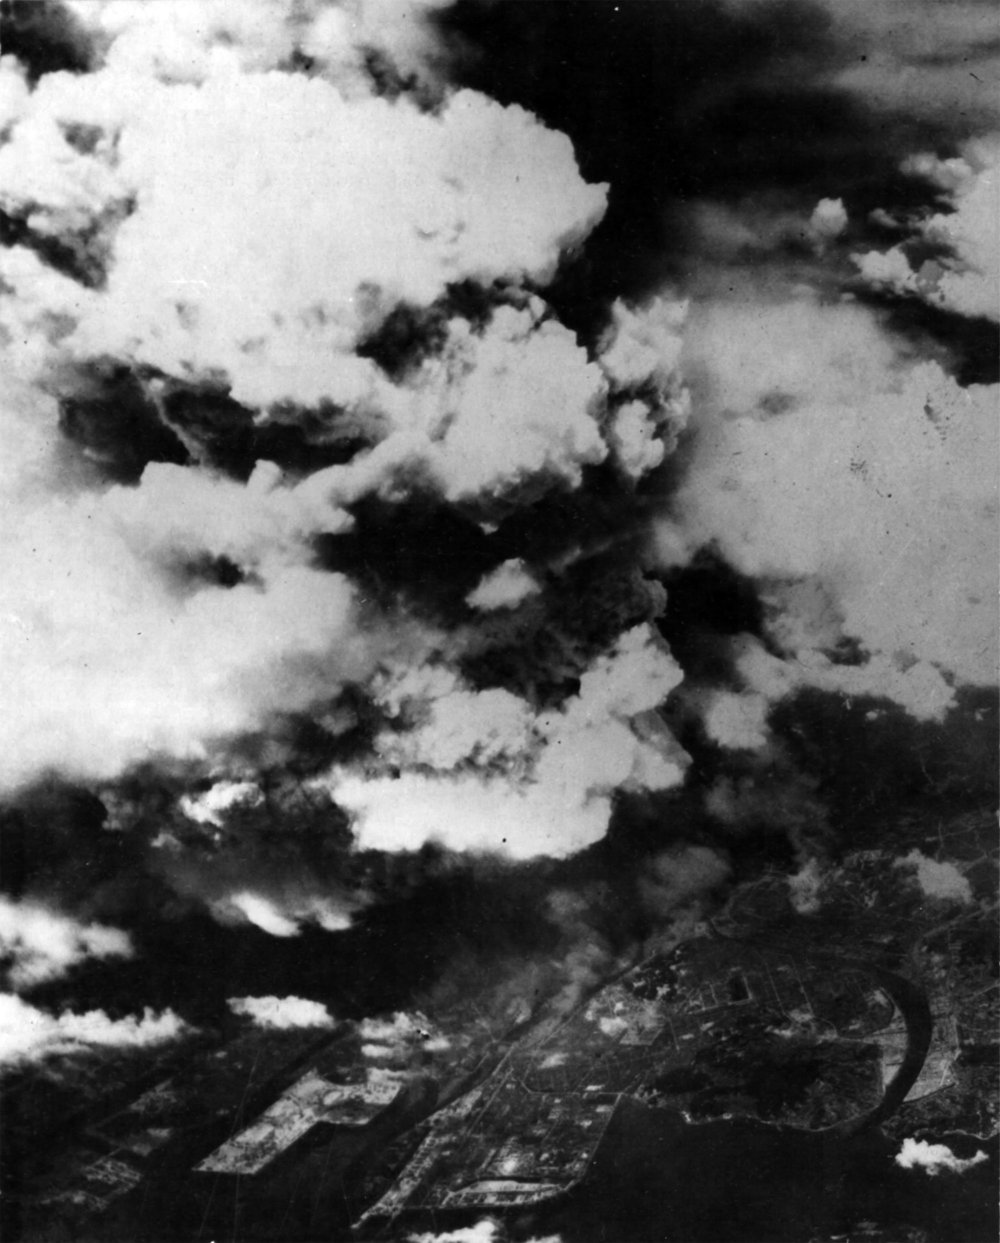 The mushroom cloud that appeared in the sky above Hiroshima. The  Enola Gay  dropped an Atomic Bomb above Hiroshima from the altitude of 9,600 m at 8:15a.m., August 6, 1945. The Atomic Bomb exploded 43 seconds later at the altitude of around 600 m above Hiroshima, with a strong flash: one second later, a gigantic ball of frame emerged, the diameter of which was around 280 m.  The   mushroom clouds rose up to the altitude of around 10,000 m, the lower edge of the stratosphere. (きのこ雲は通常、ひとつの写真が多いですね。この写真では複数なので、一応複数にしました。)